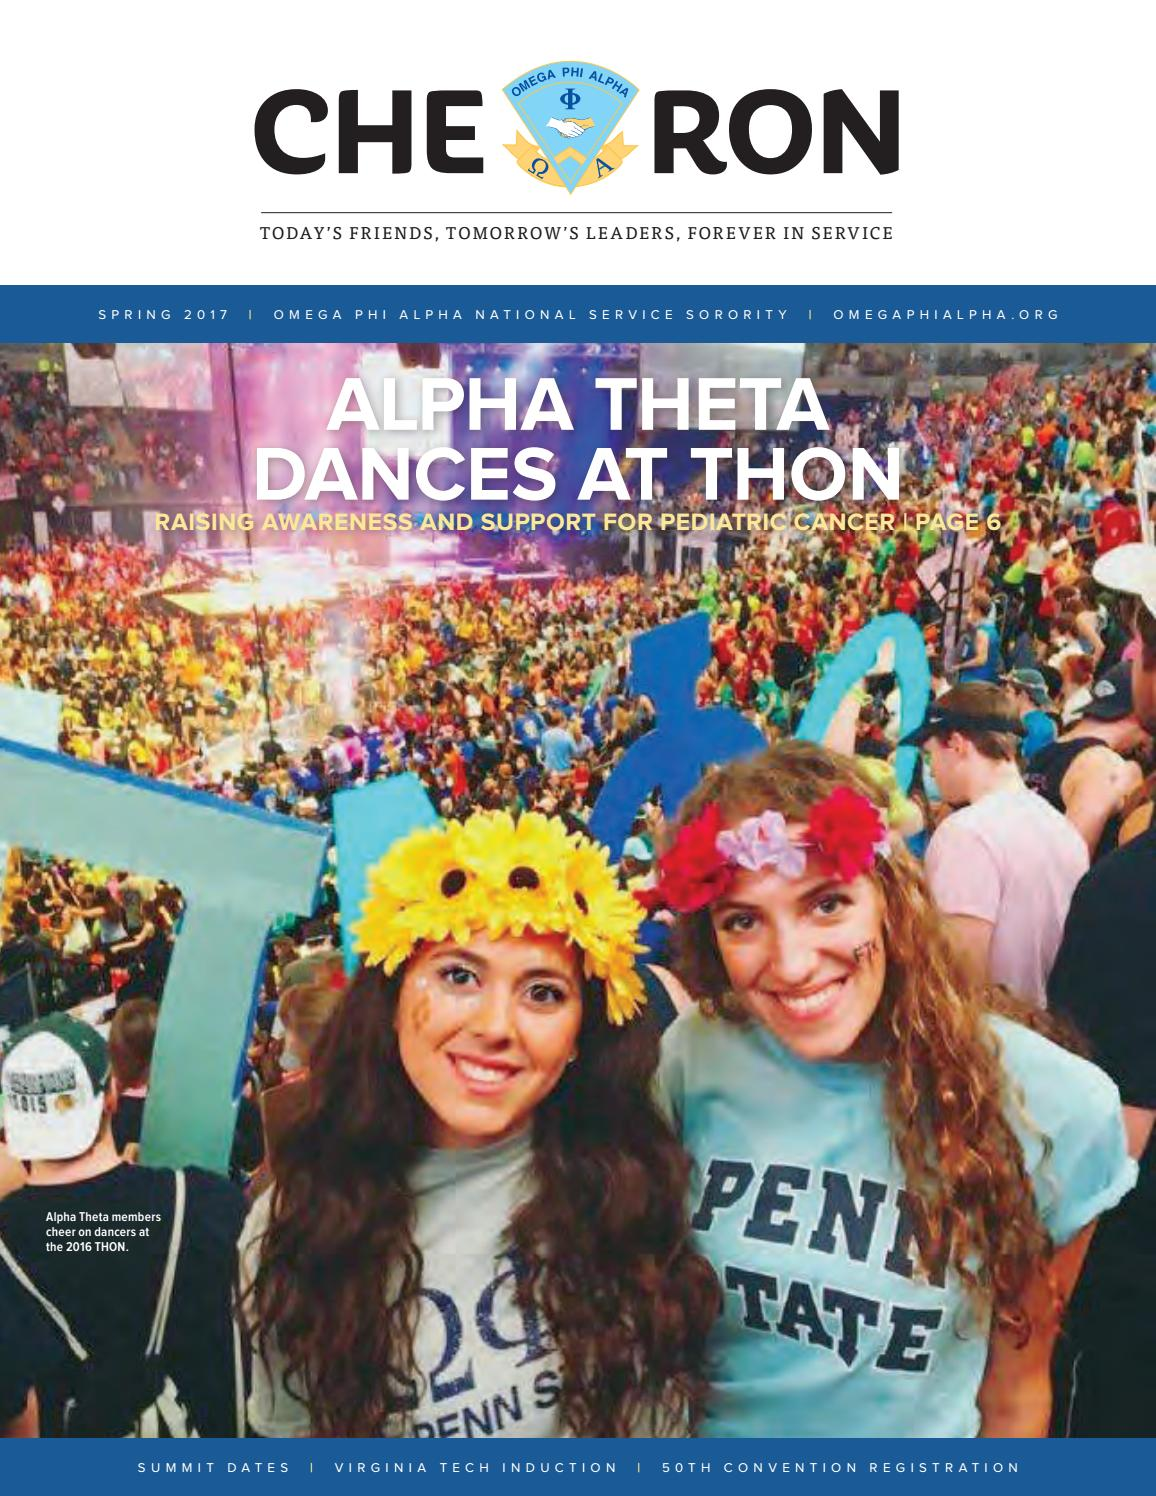 chevron spring2017omega phi alpha national service sorority - issuu